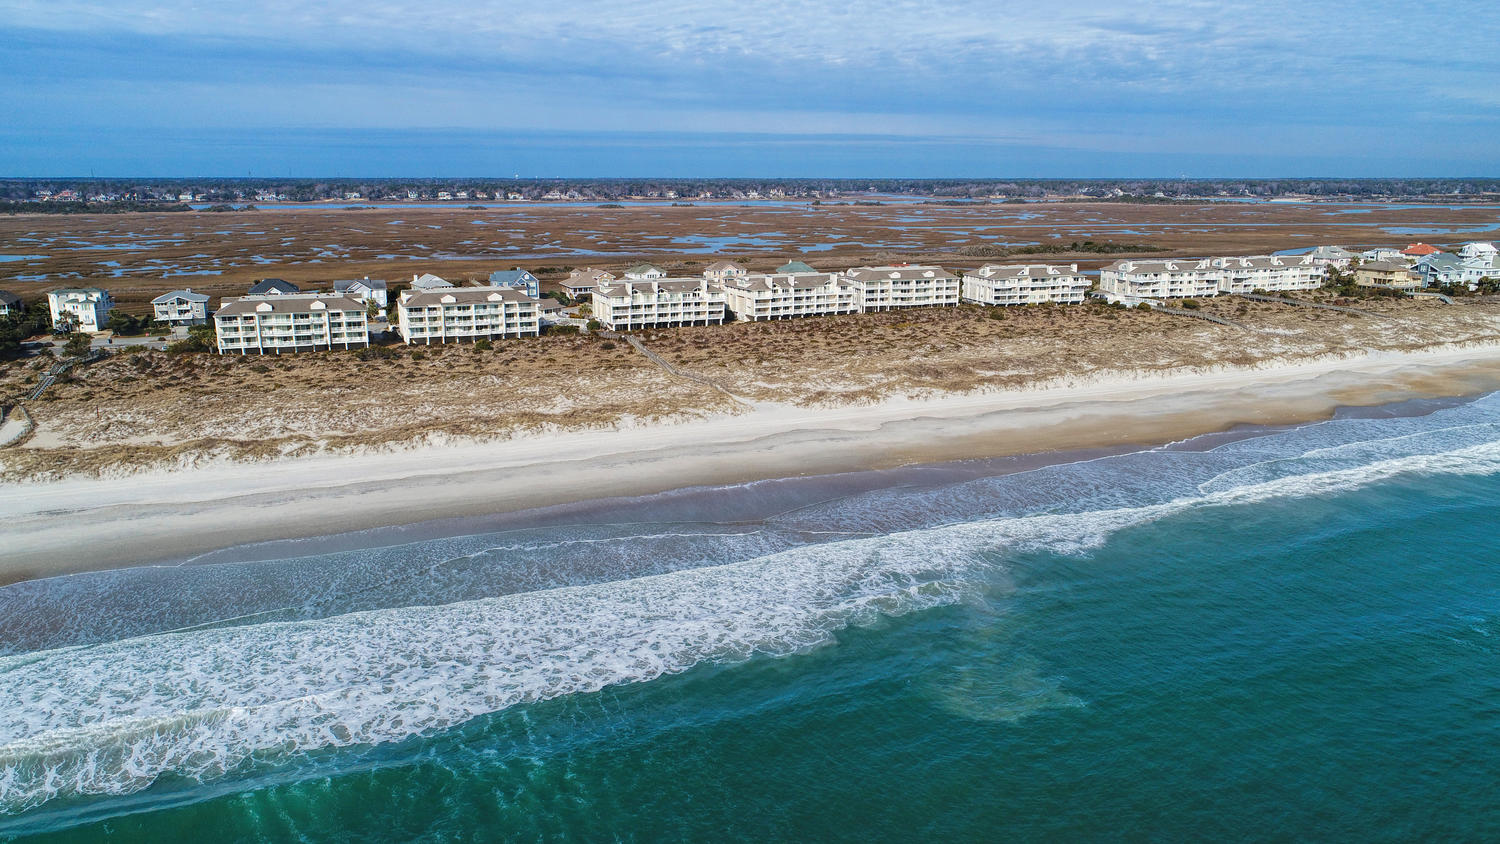 Owner Occupied Vacation Condo In Immaculate Condition Sun Sand Surfing Awaits You On The Beautiful Island Of Wrightsville Beach